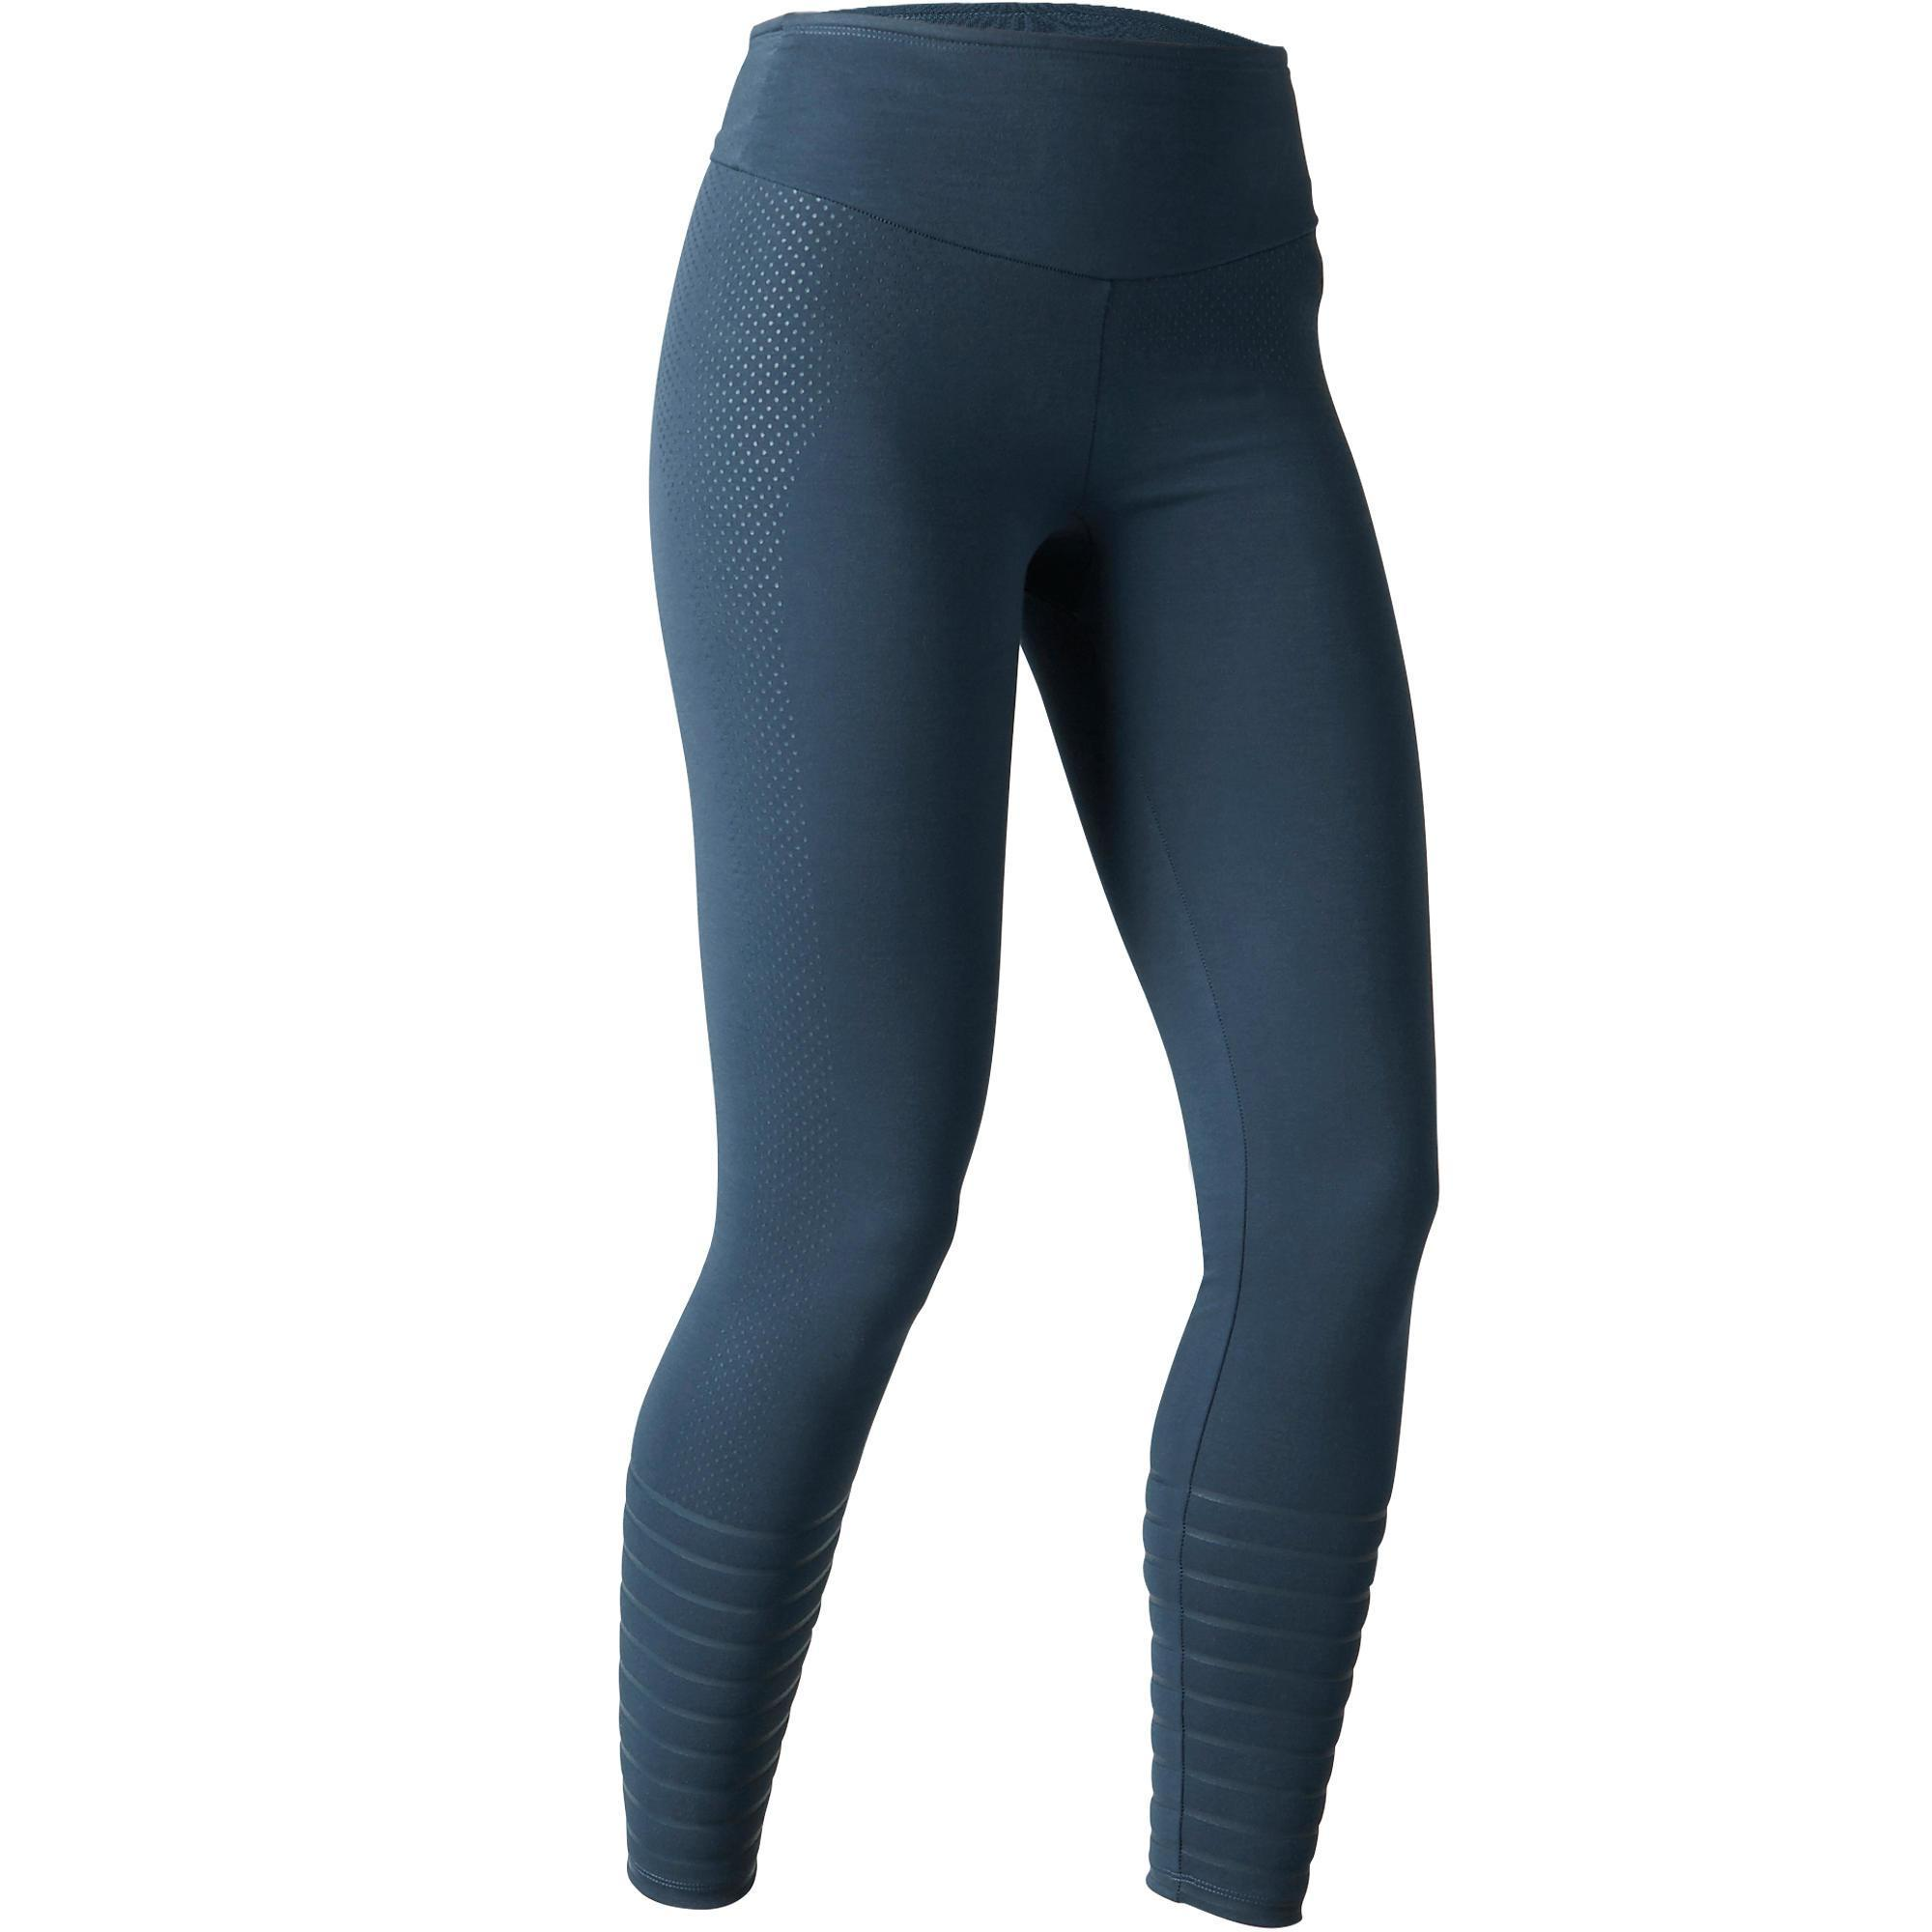 Leggings 900 Slim Gym Stretching & Pilates Damen blau | Bekleidung > Hosen > Leggings | Blau | Domyos